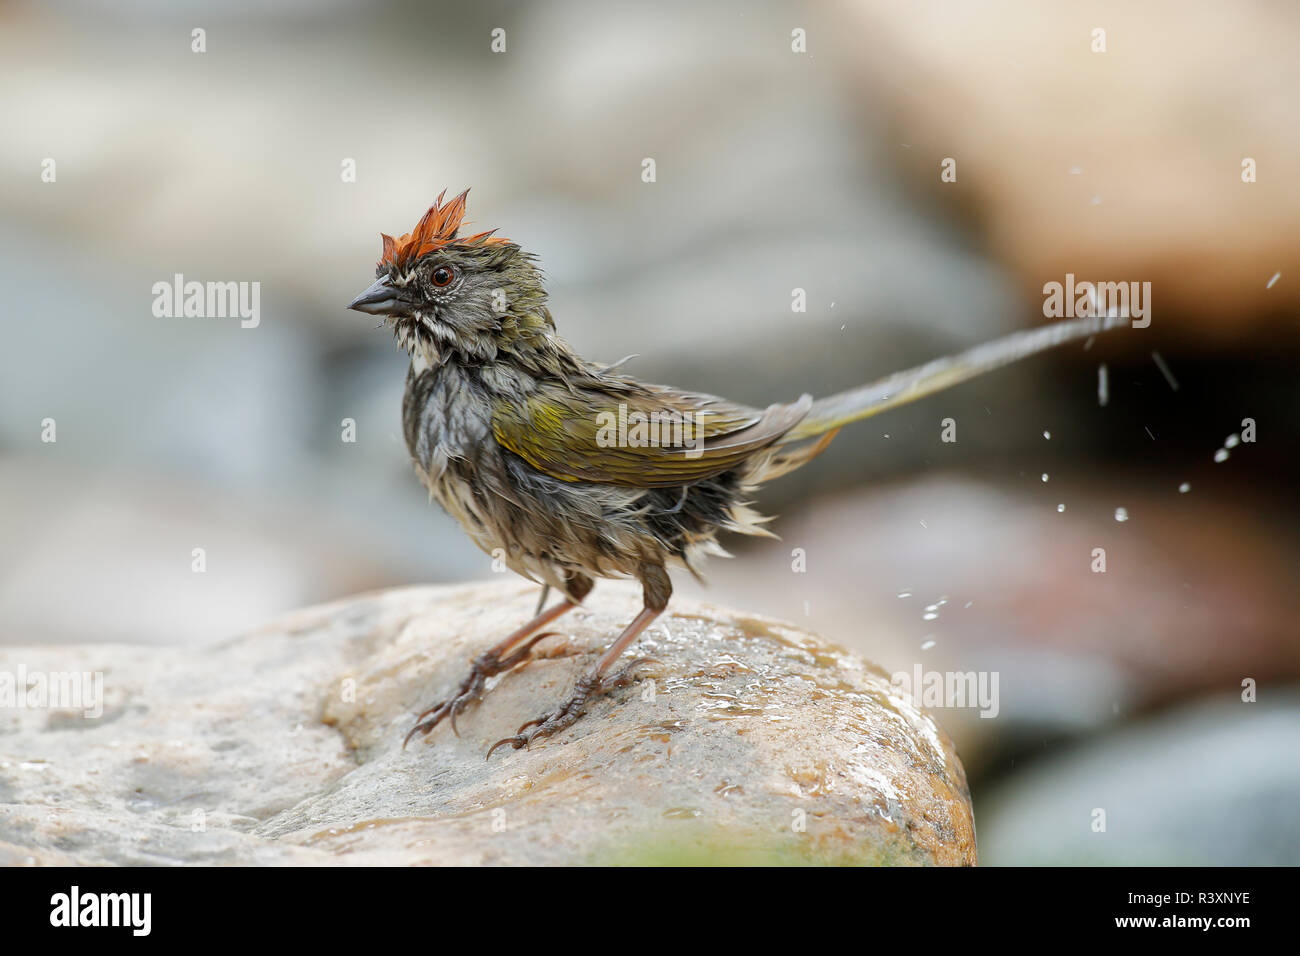 USA, Colorado, Woodland Park. Wet green-tailed towhee after bathing. Credit as: Don Grall / Jaynes Gallery / DanitaDelimont. com - Stock Image